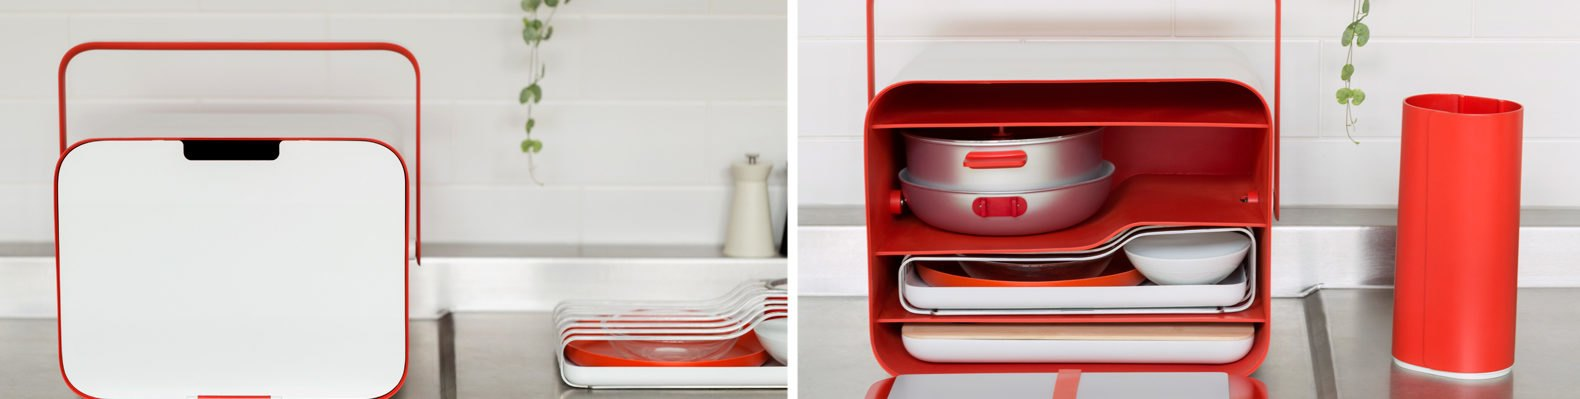 On the left, small white and red box closed. On the right, box opened holding different kitchen utensils.